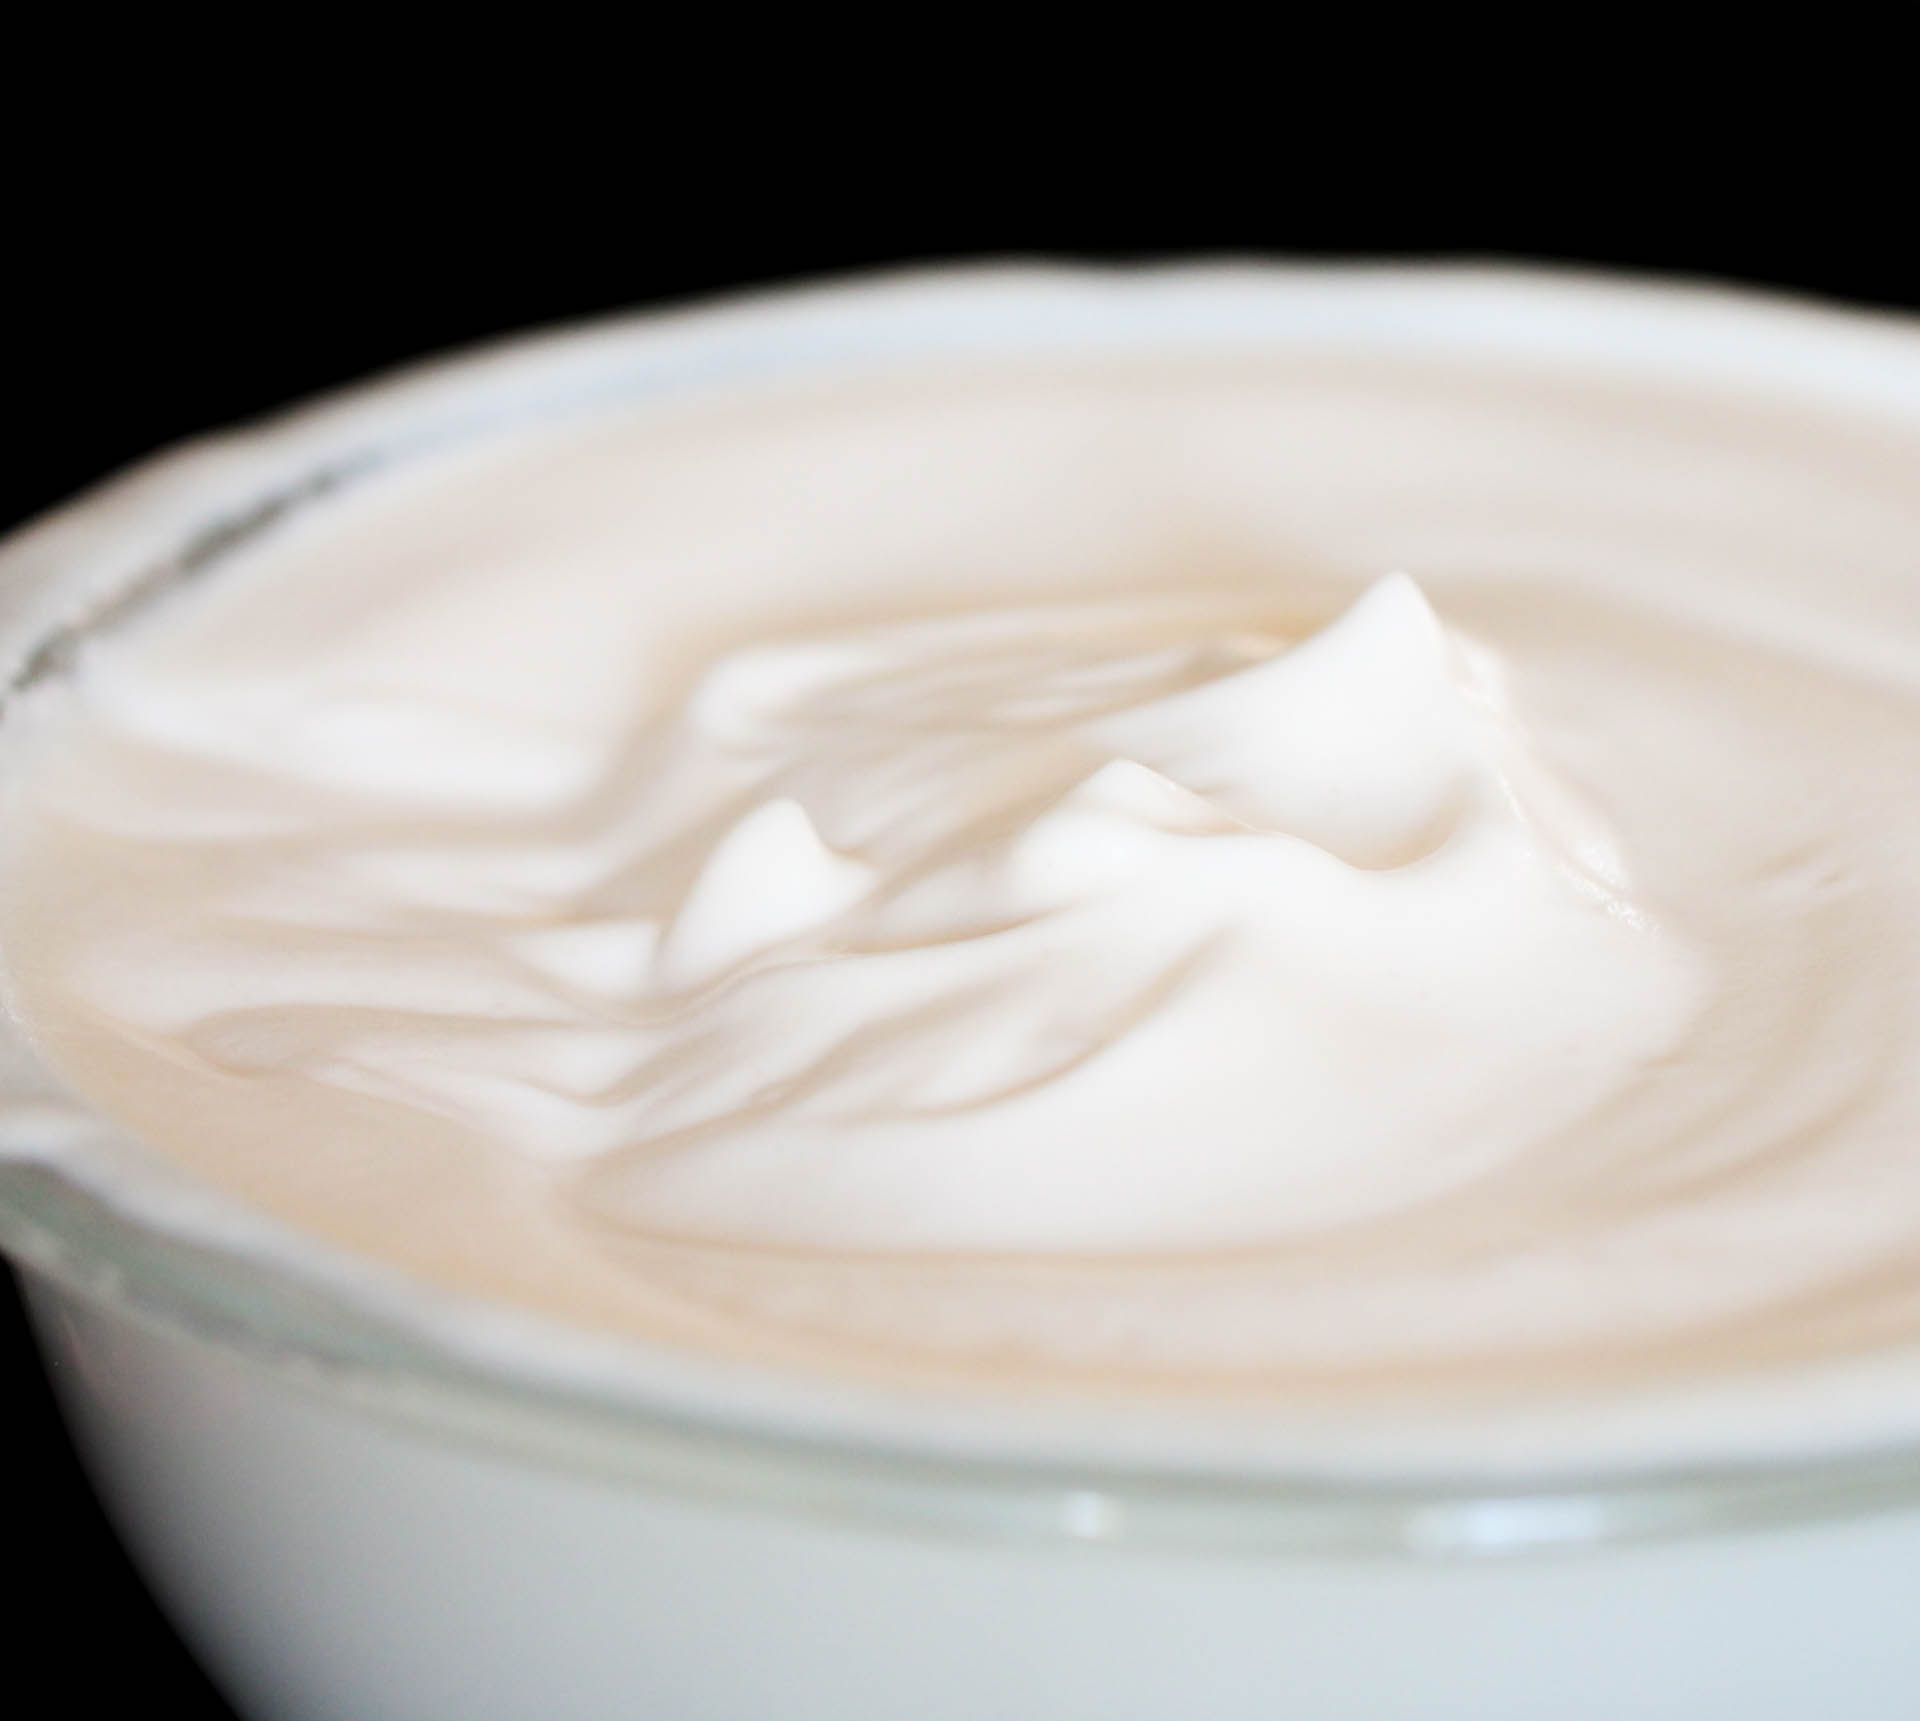 Fluffed whipped evaporated milk in a glass bowl